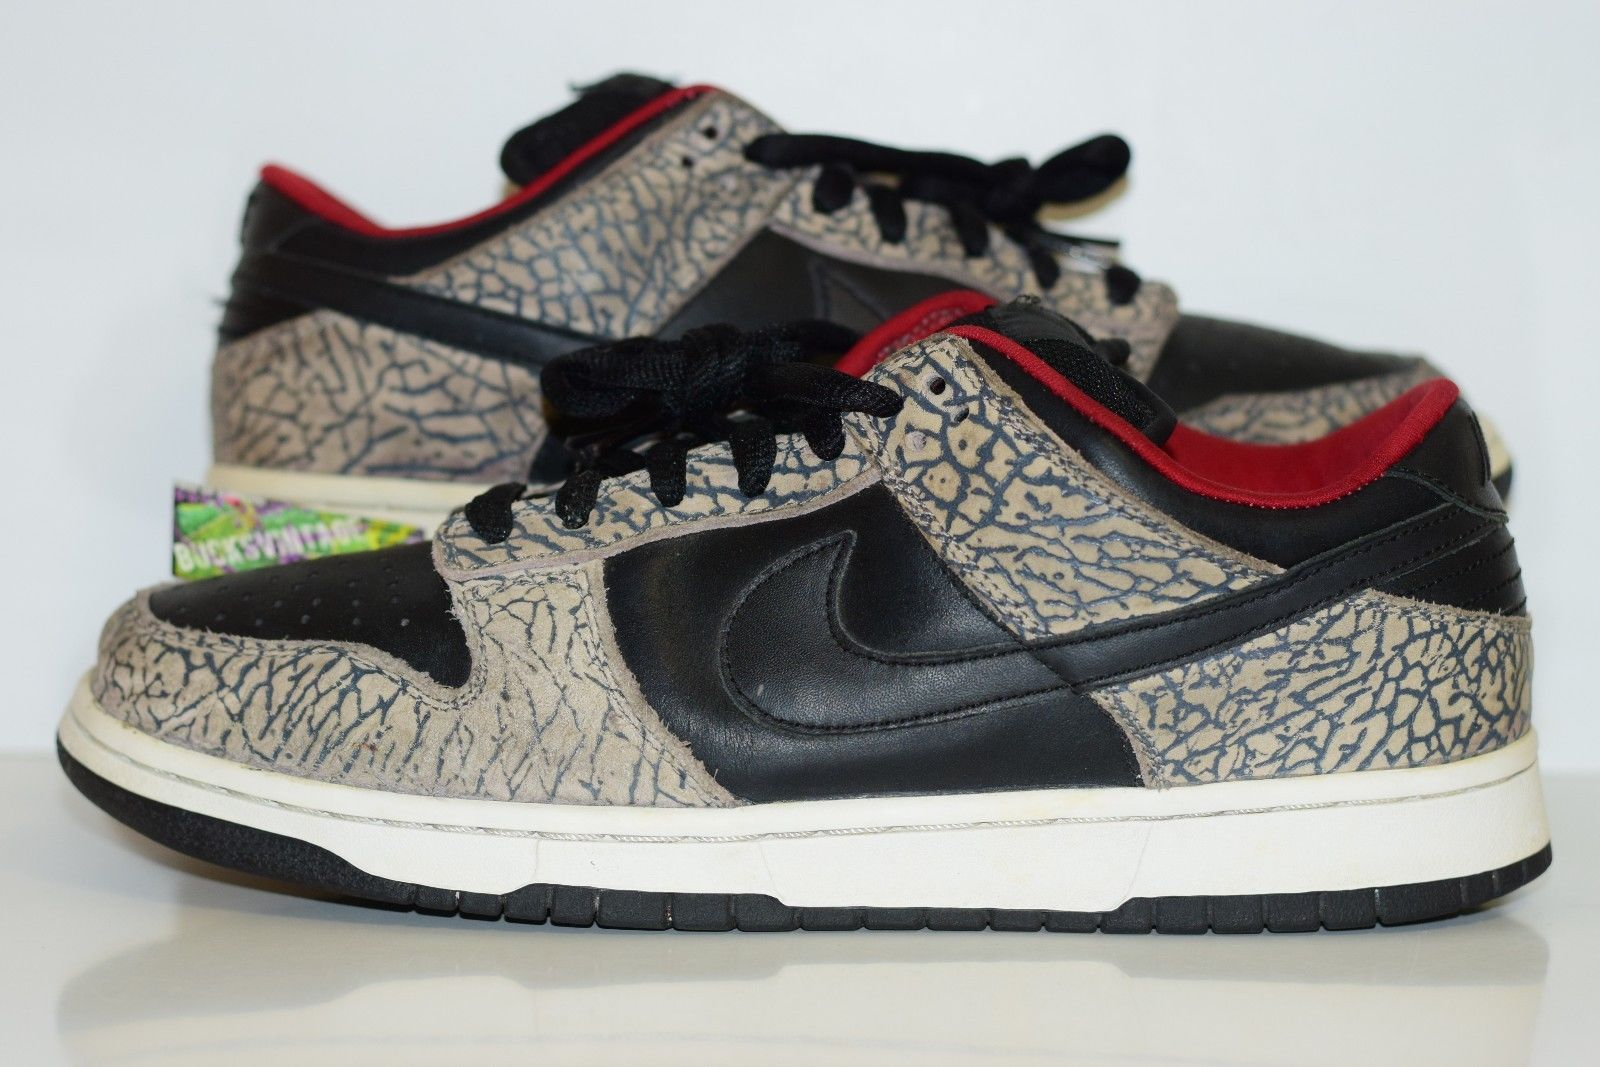 buy popular 85cfc 7ad02 Size 11 | 2002 DUNK LOW PRO SB SUPREME 304292-131 black/black-cement grey  from BucksVintage